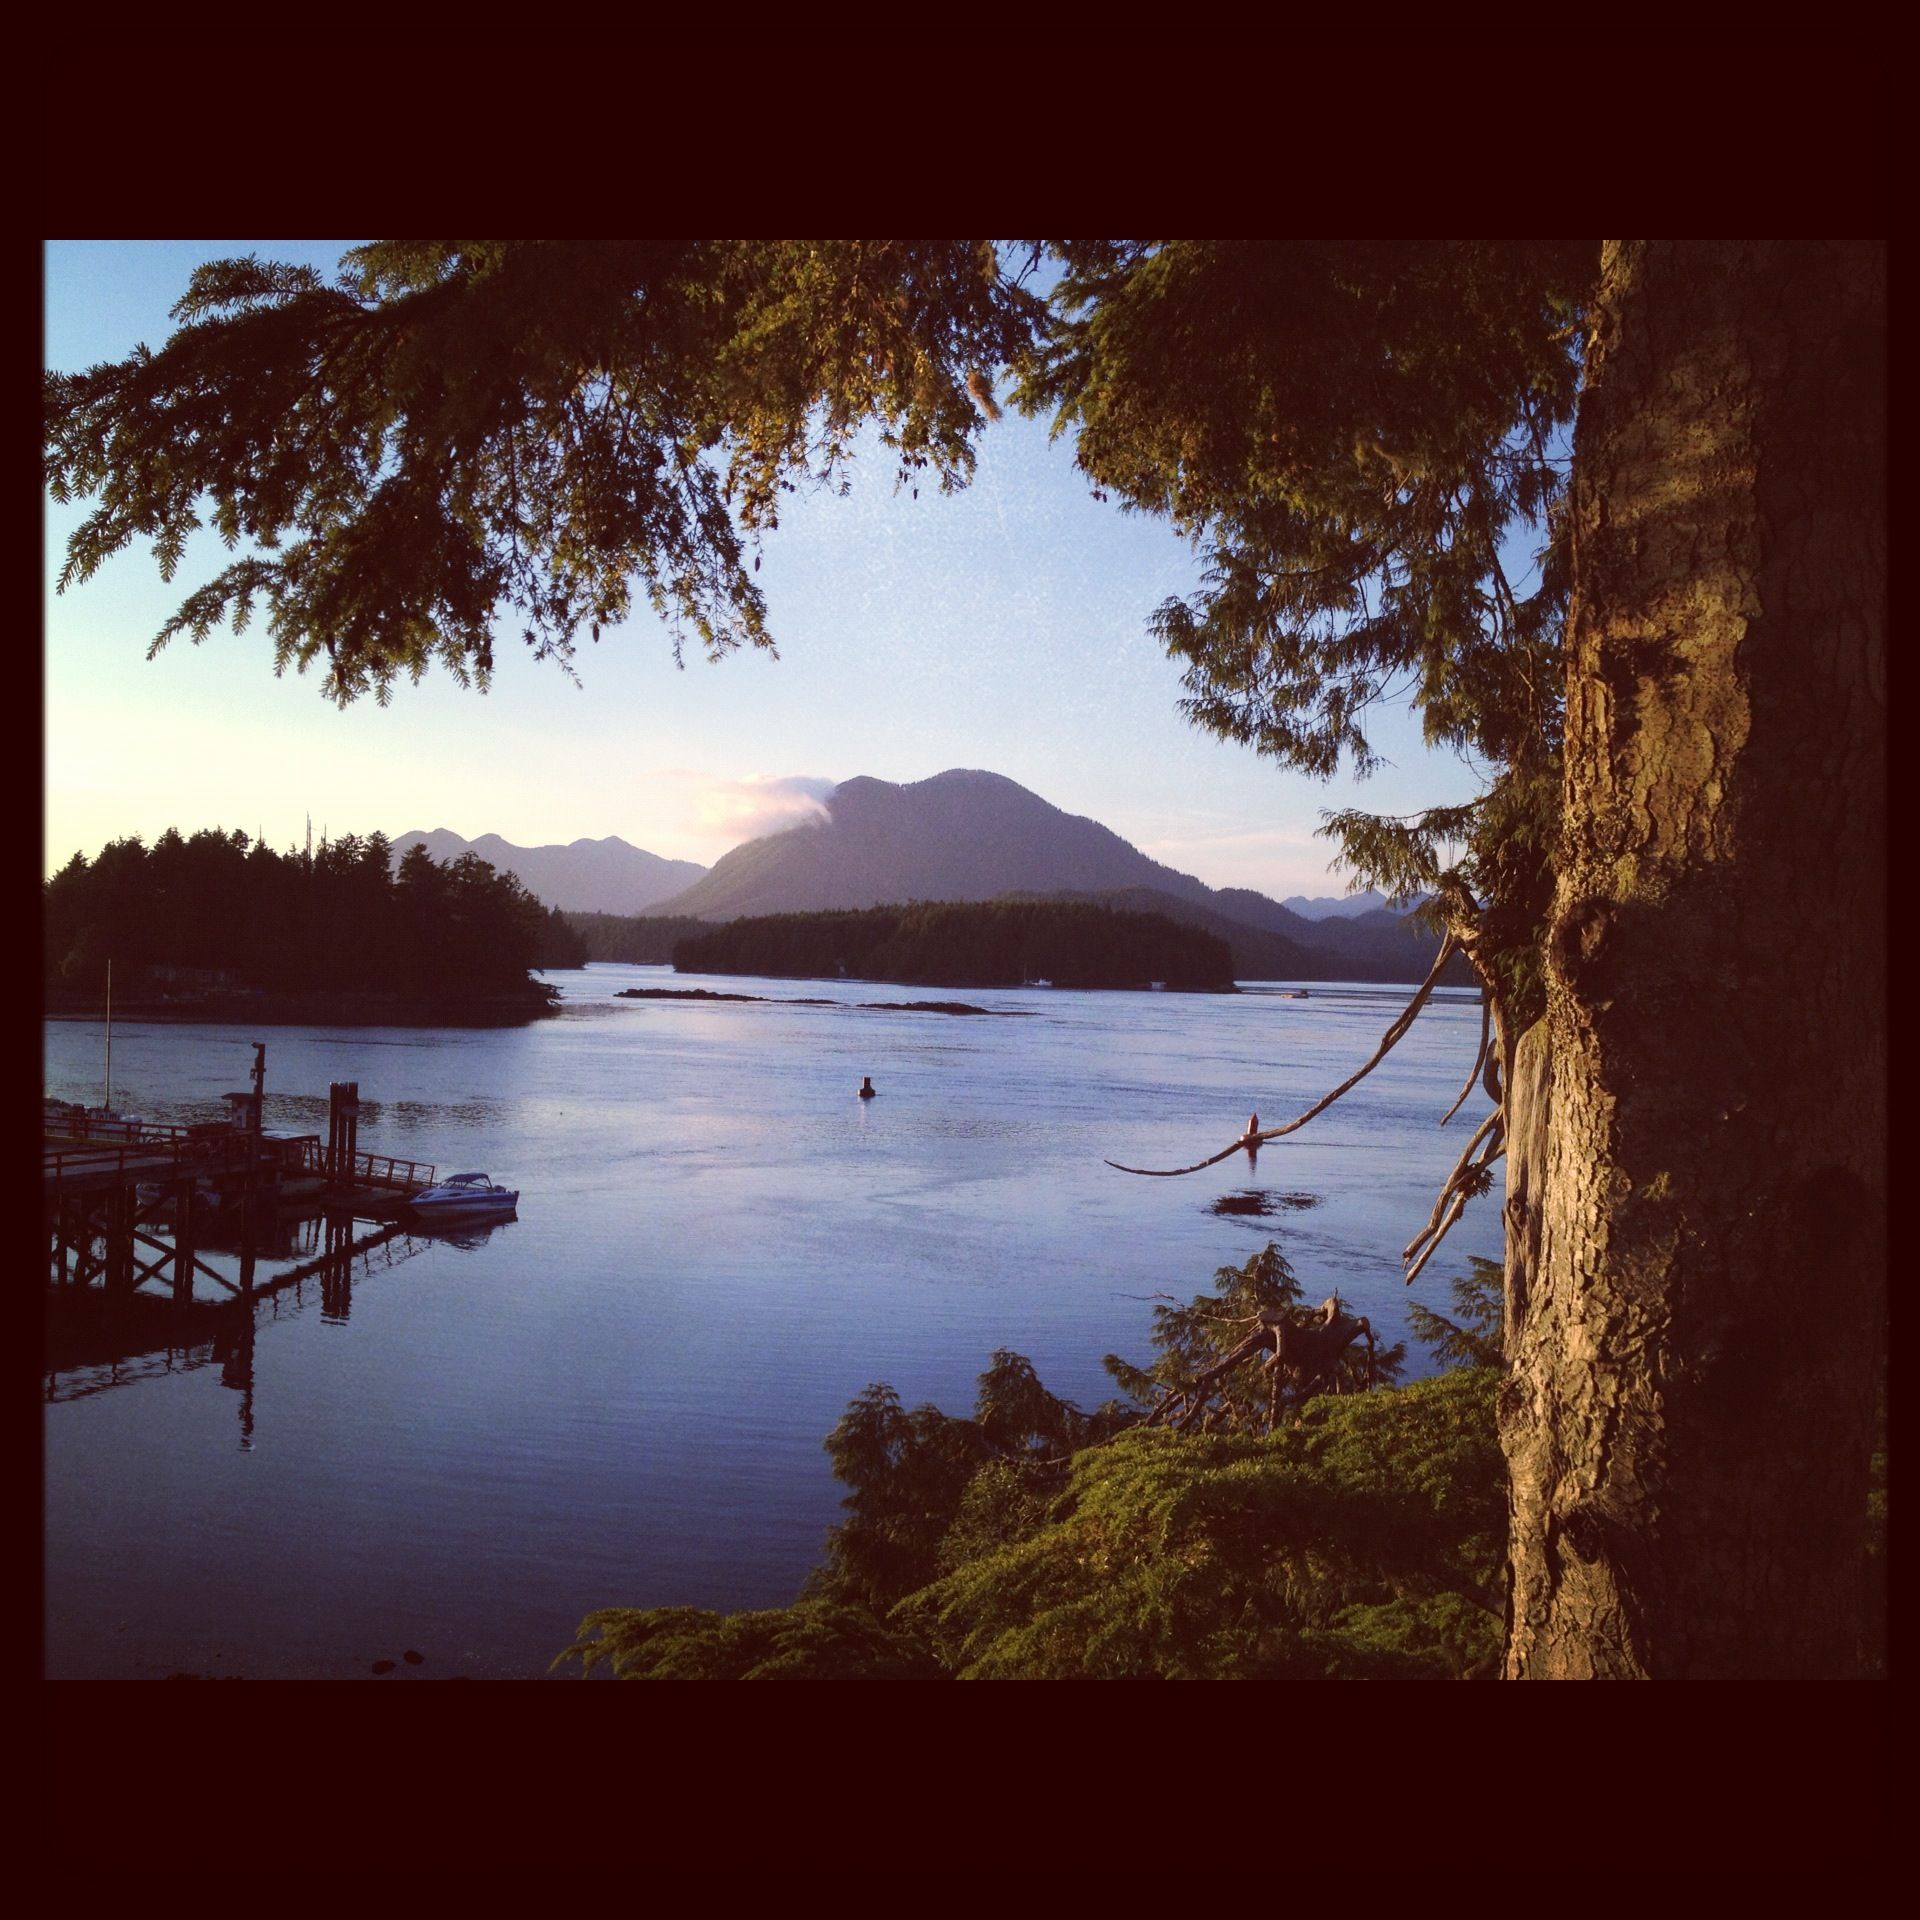 Vancouver Bc Beaches: Our Beautiful Home~Tofino